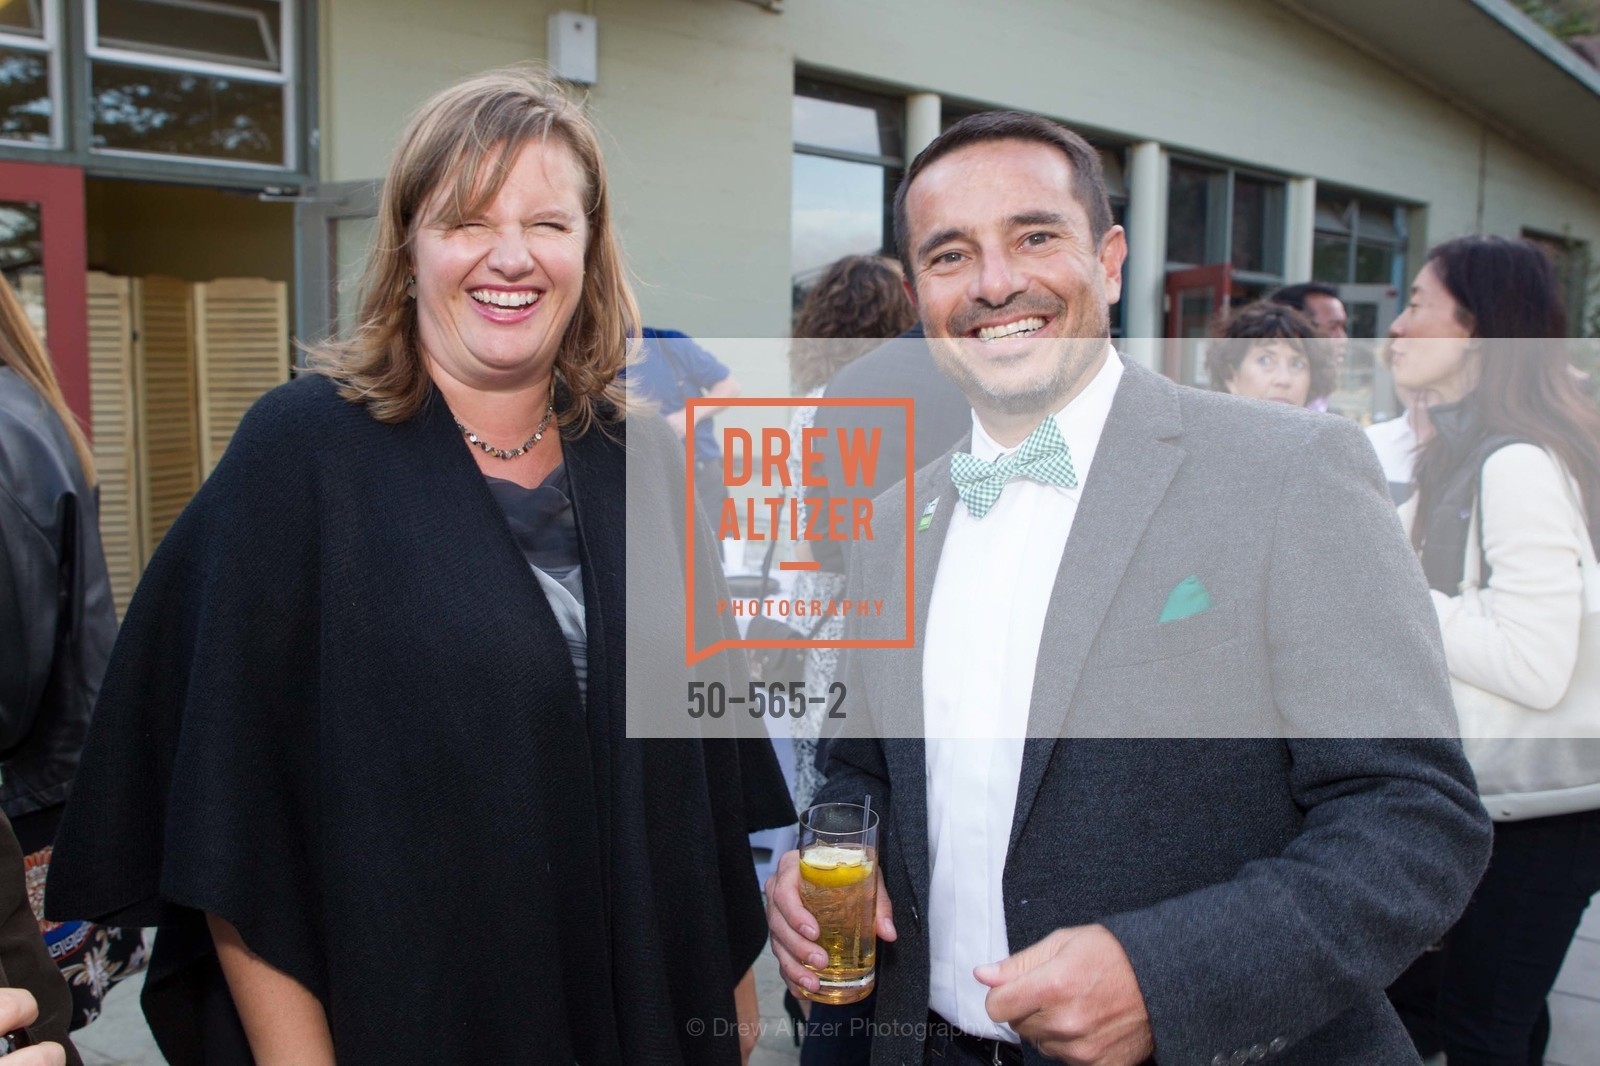 Melanie Nutter, Phil Ginsburg, GLAAD GALA Kick-Off Party Hosted by SAKS FIFTH AVENUE, Saks Fifth Avenue. 384 Post Street, September 12th, 2014,Drew Altizer, Drew Altizer Photography, full-service agency, private events, San Francisco photographer, photographer california